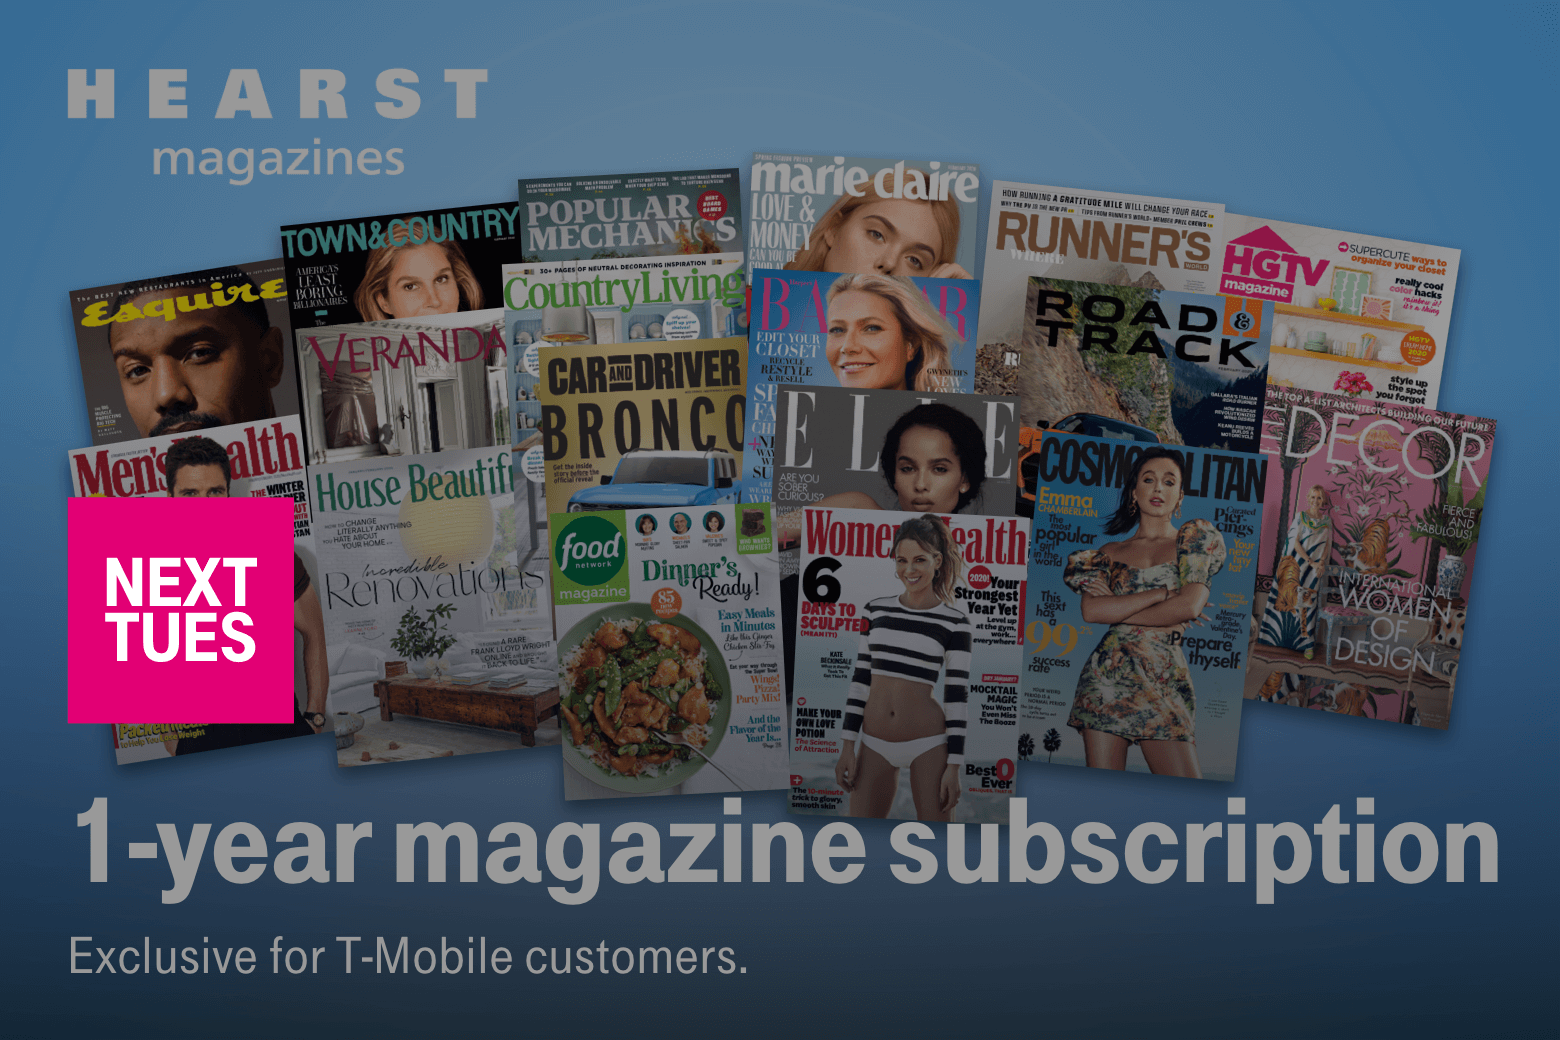 Hearst magazines. Next Tuesday. 1-year magazine subscription. Exclusive for T-Mobile customers.